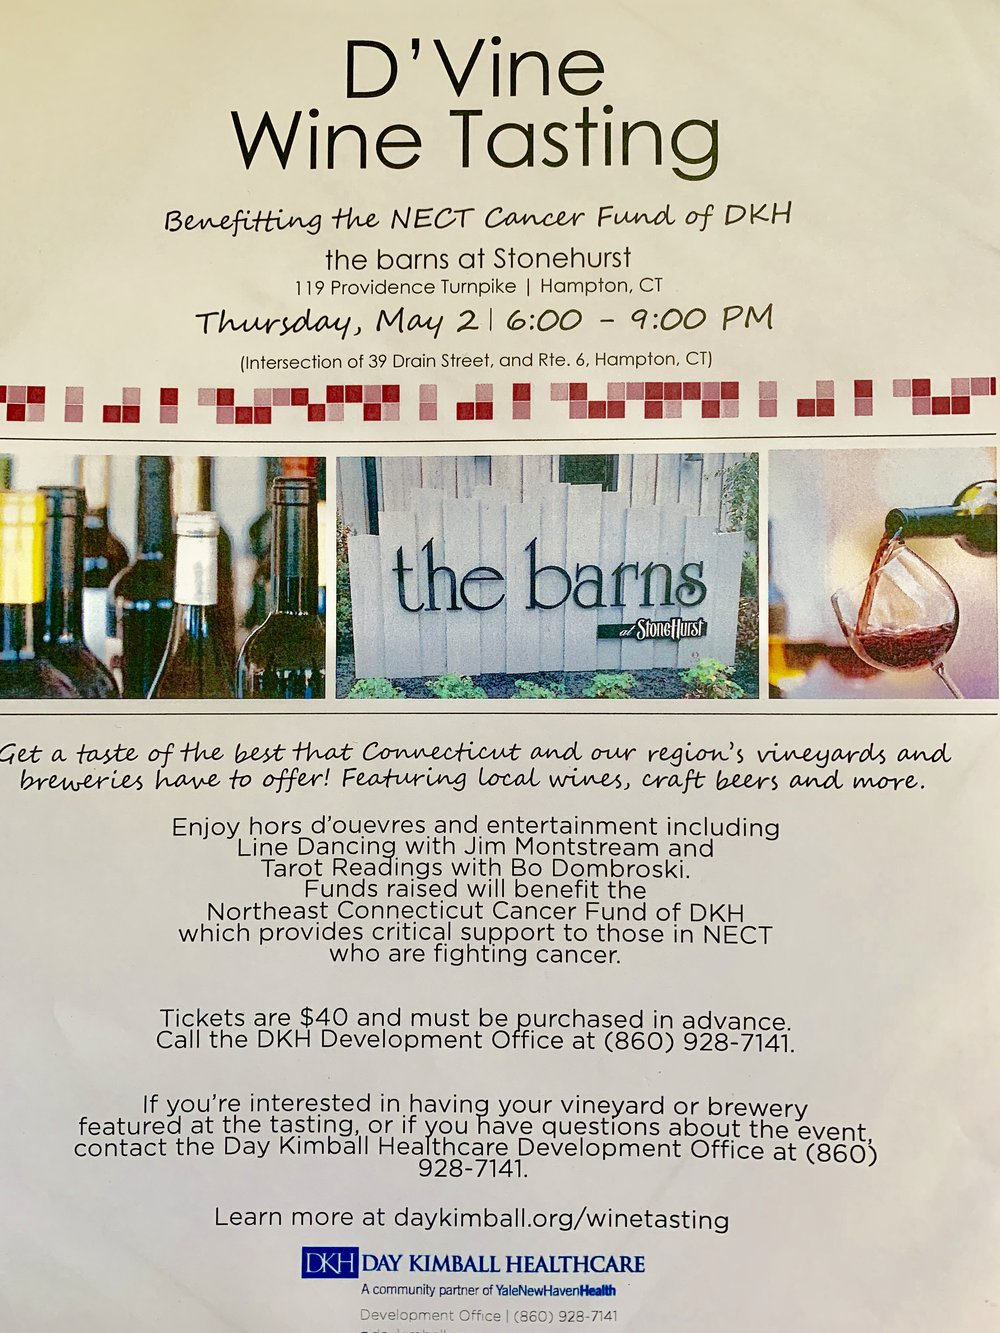 CT wine tasting event benefit Day kimball